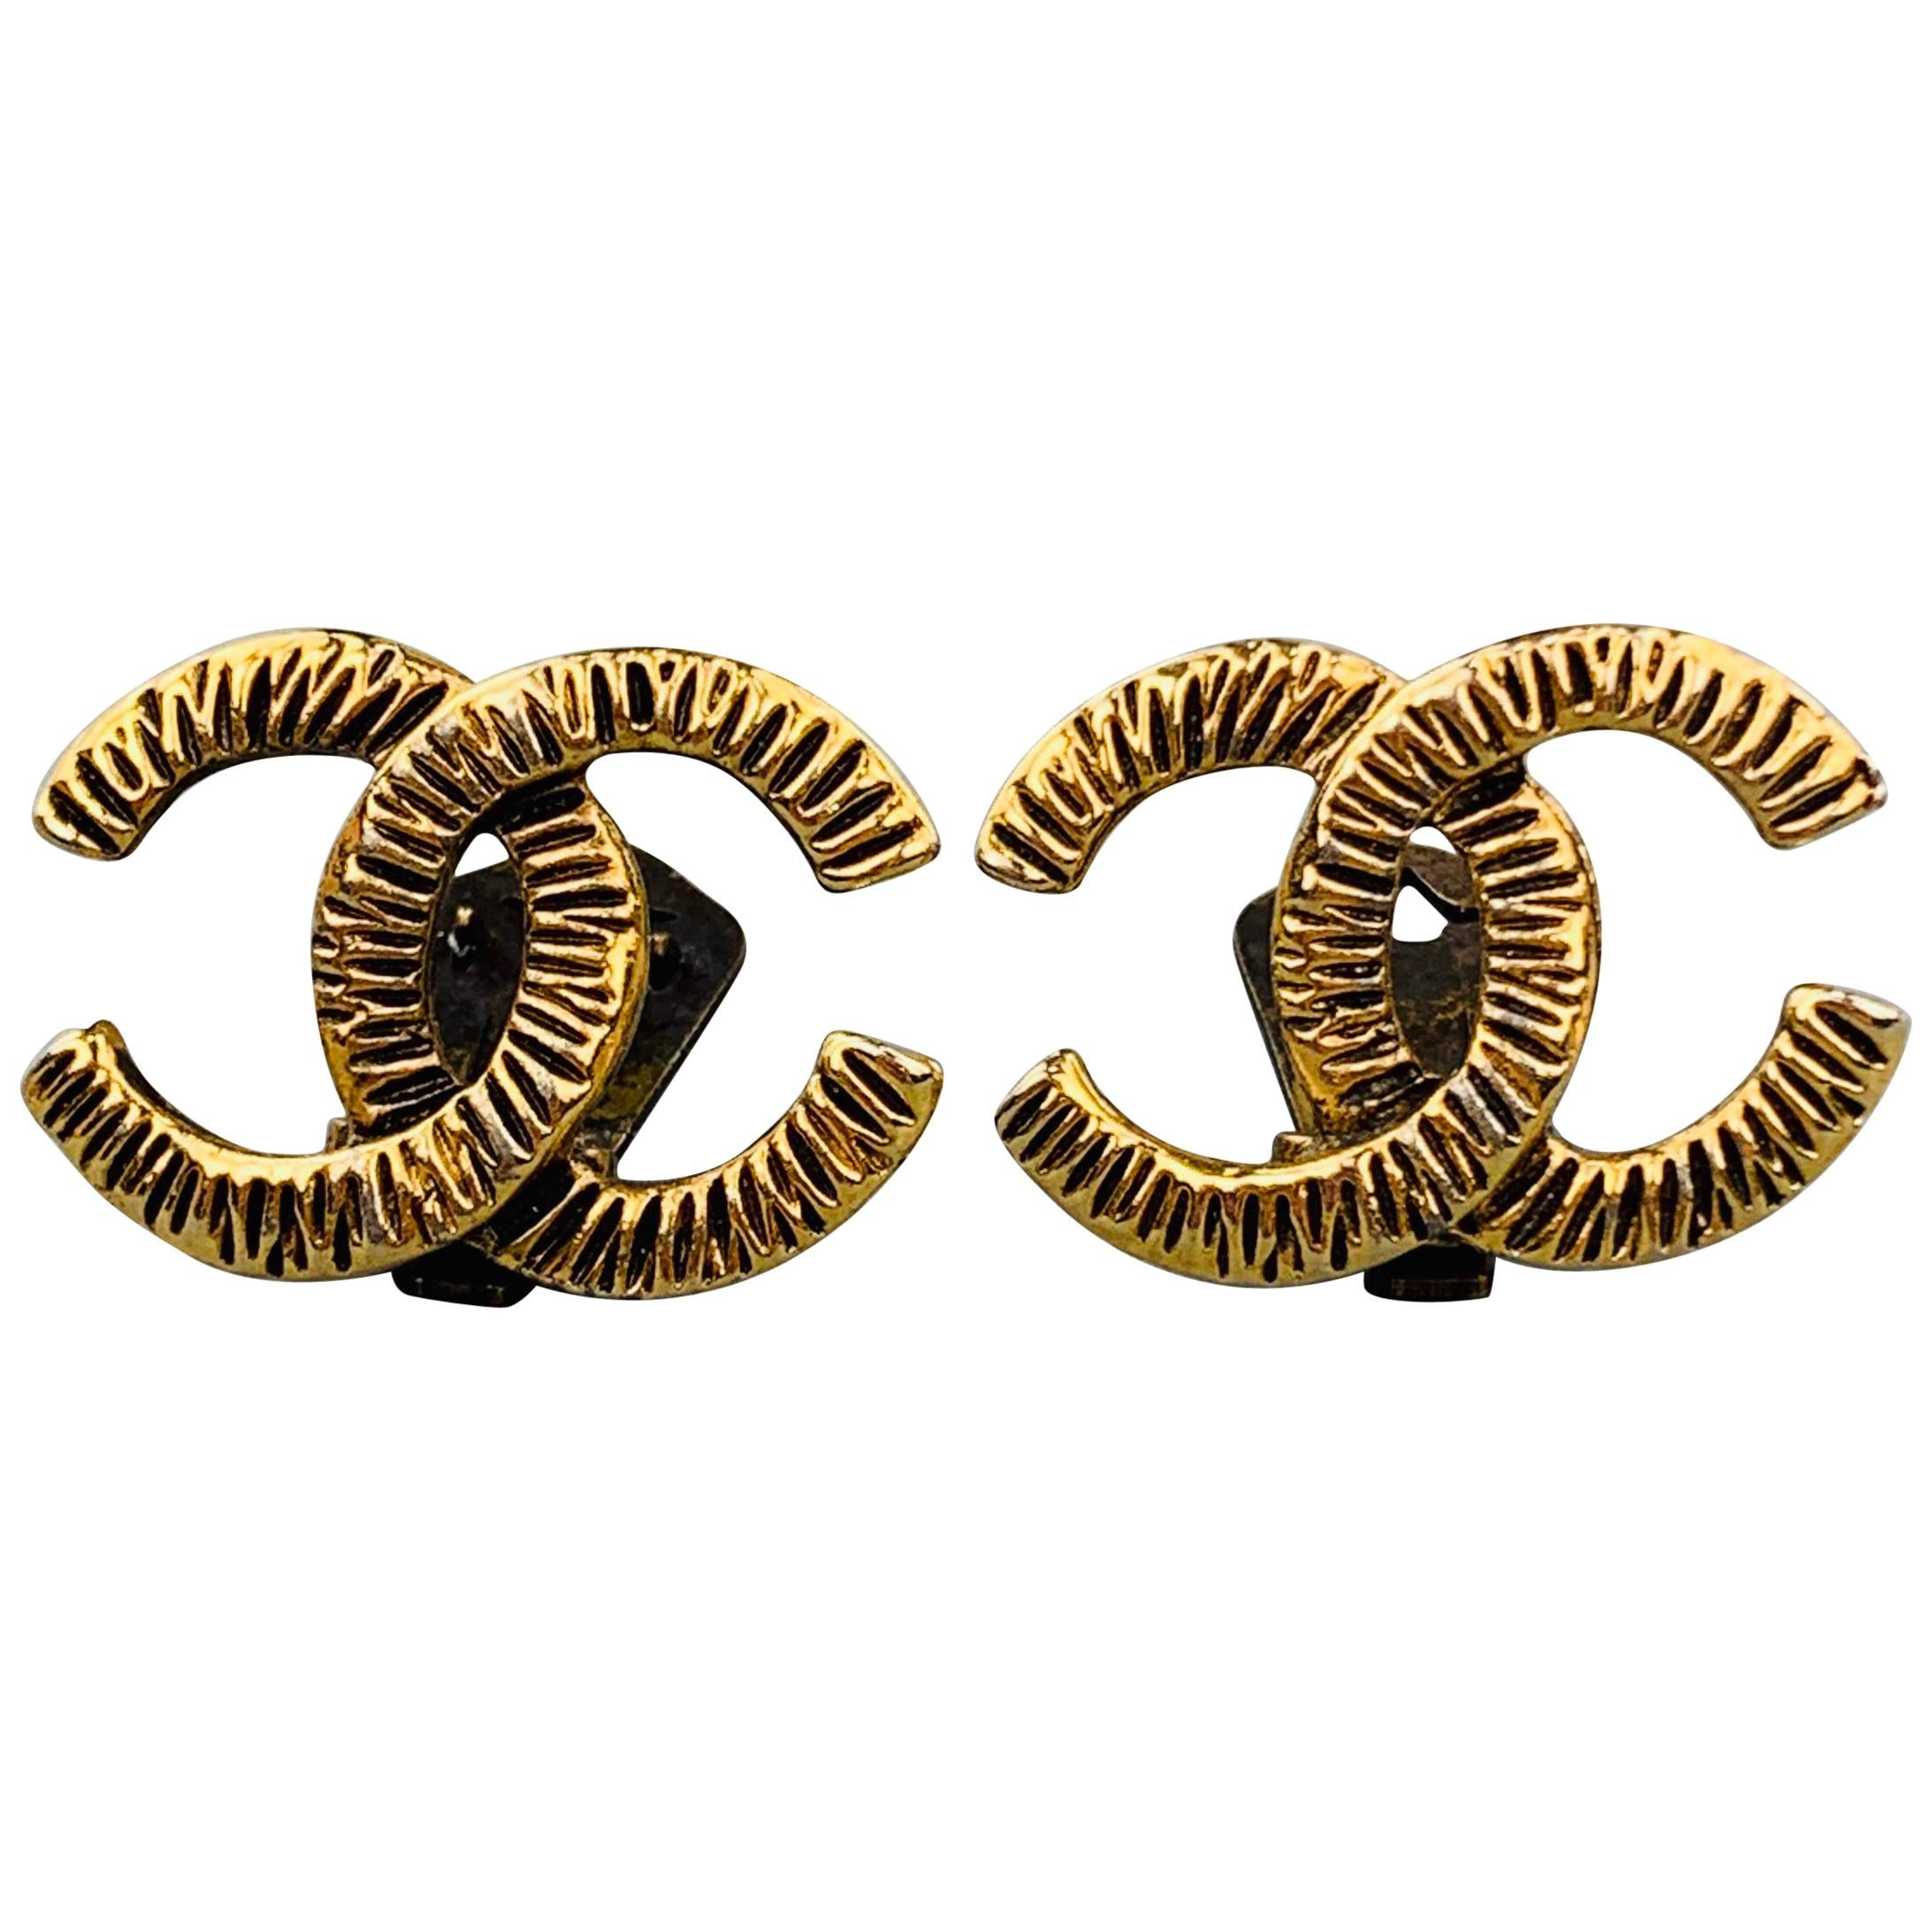 049f629a630c0 CHANEL VINTAGE 1950's Antique Gold Tone CC Clip On Earrings